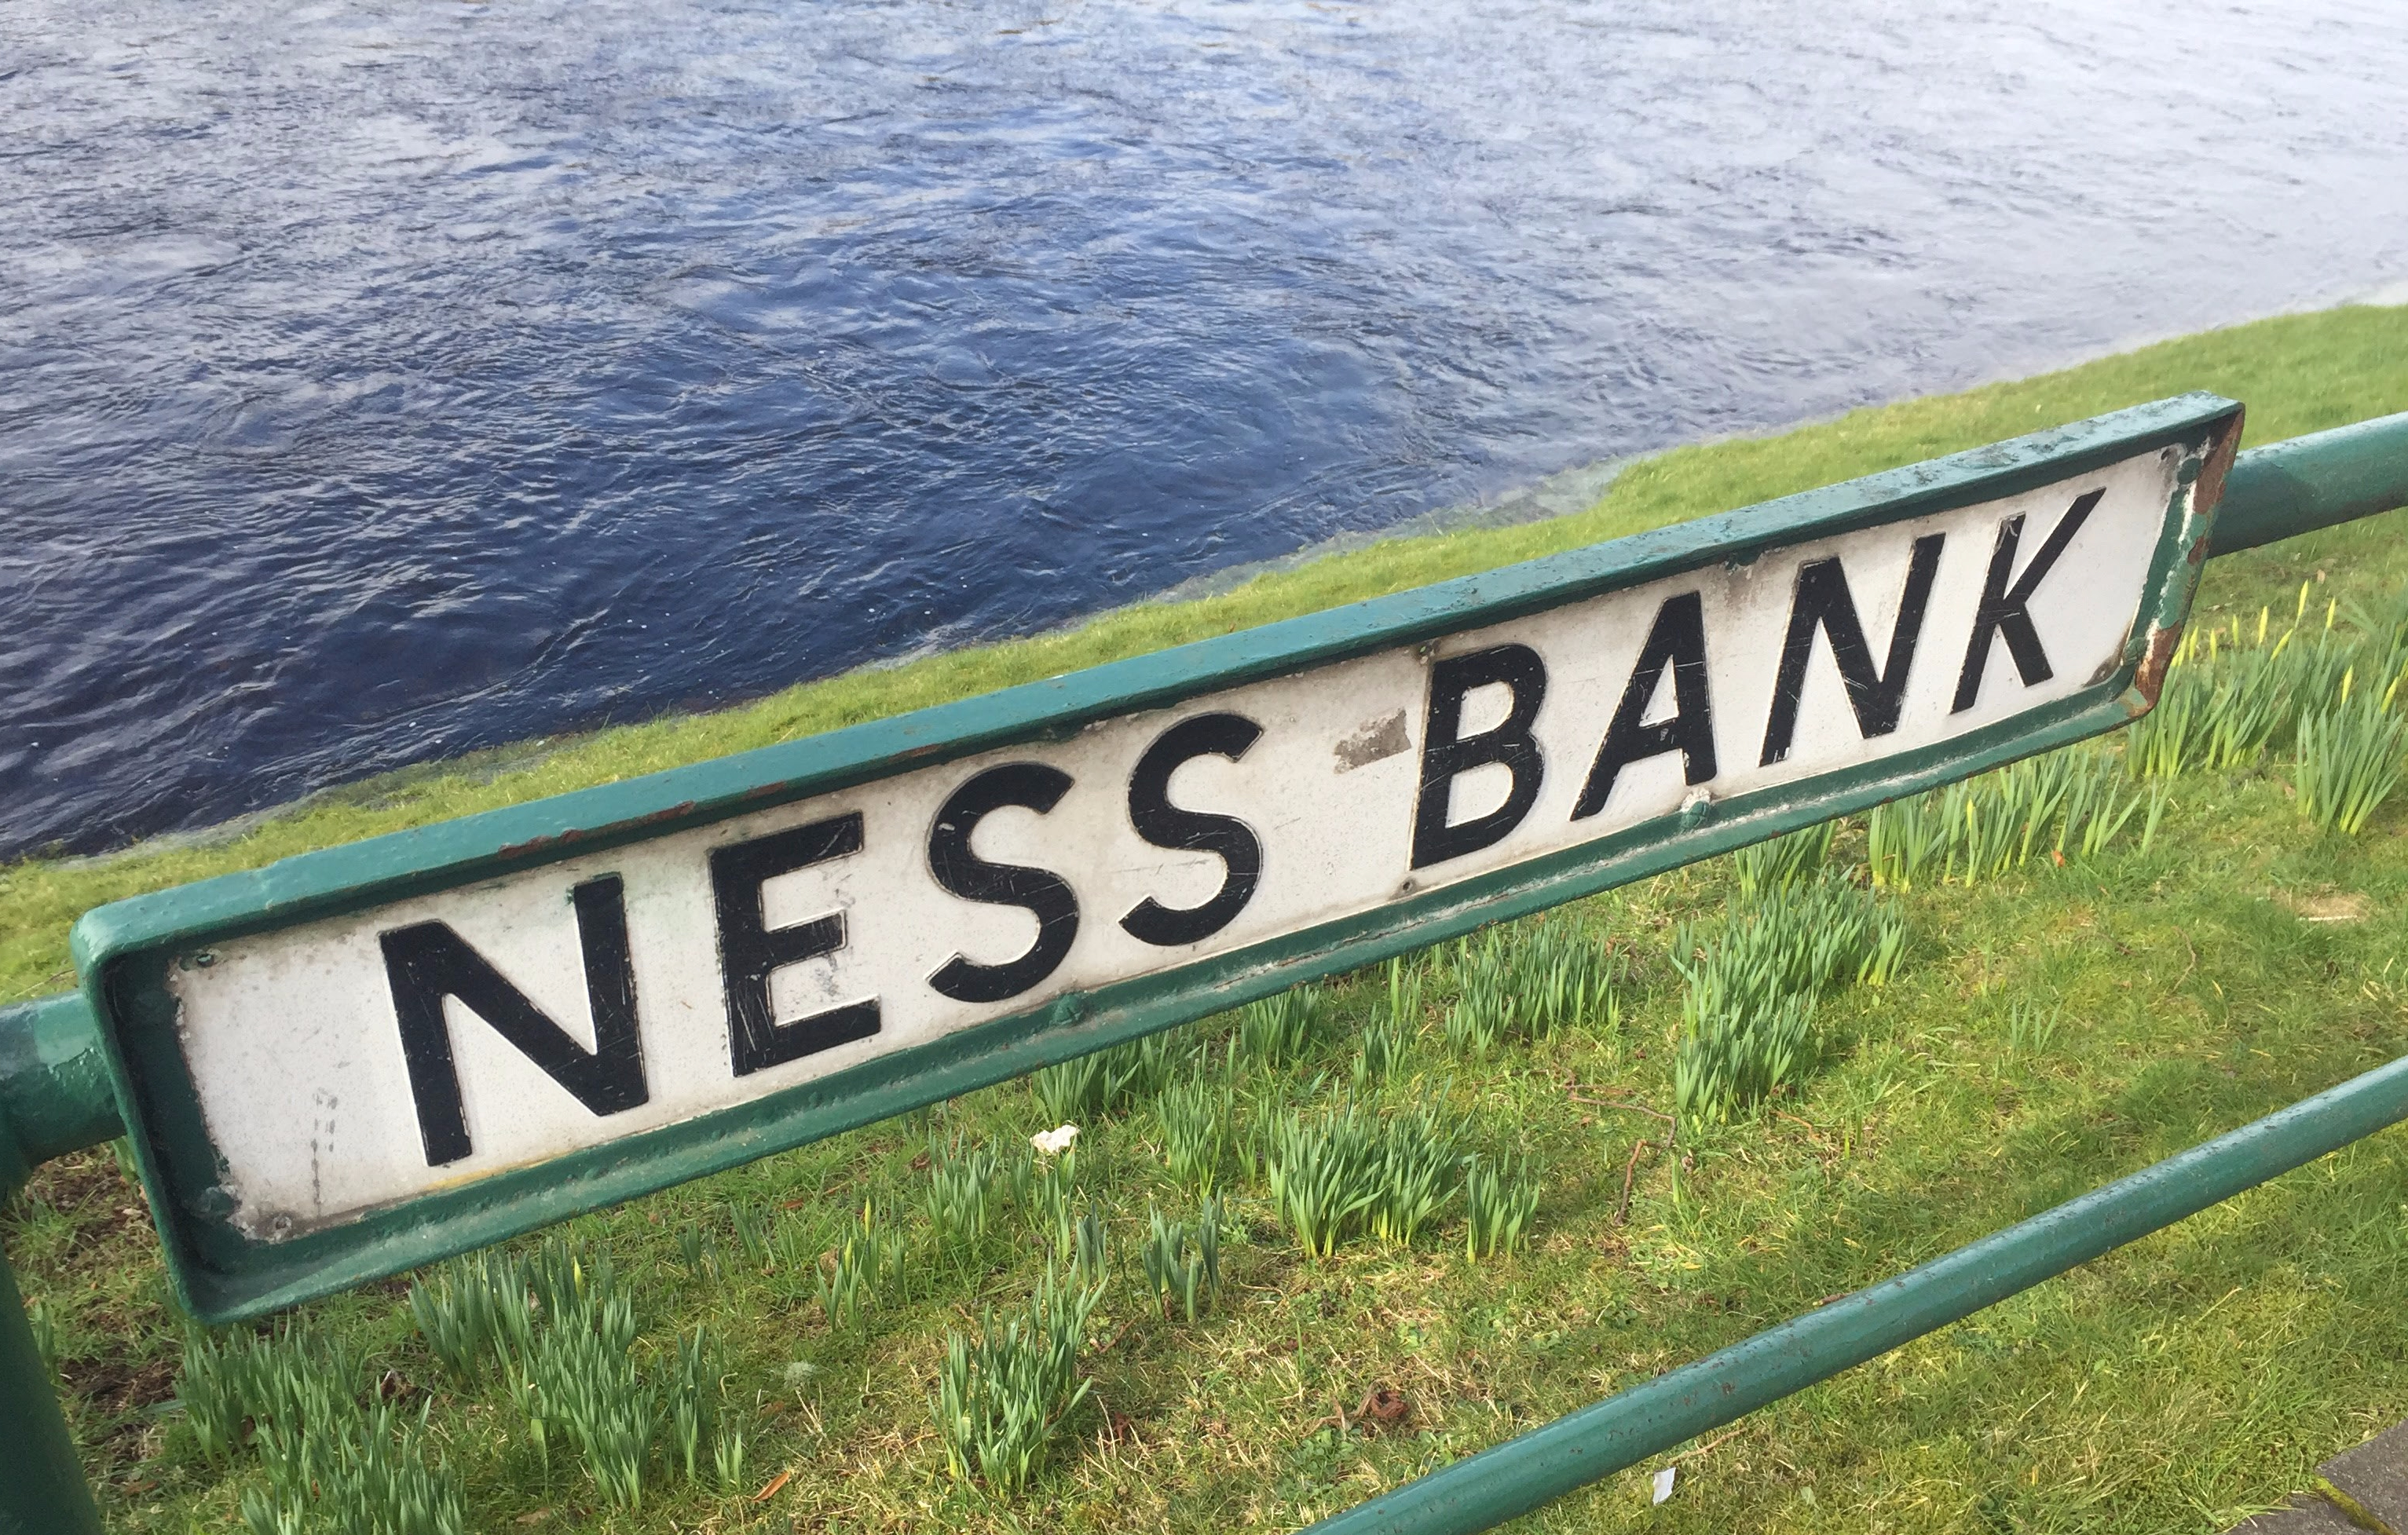 Ness Bank sign